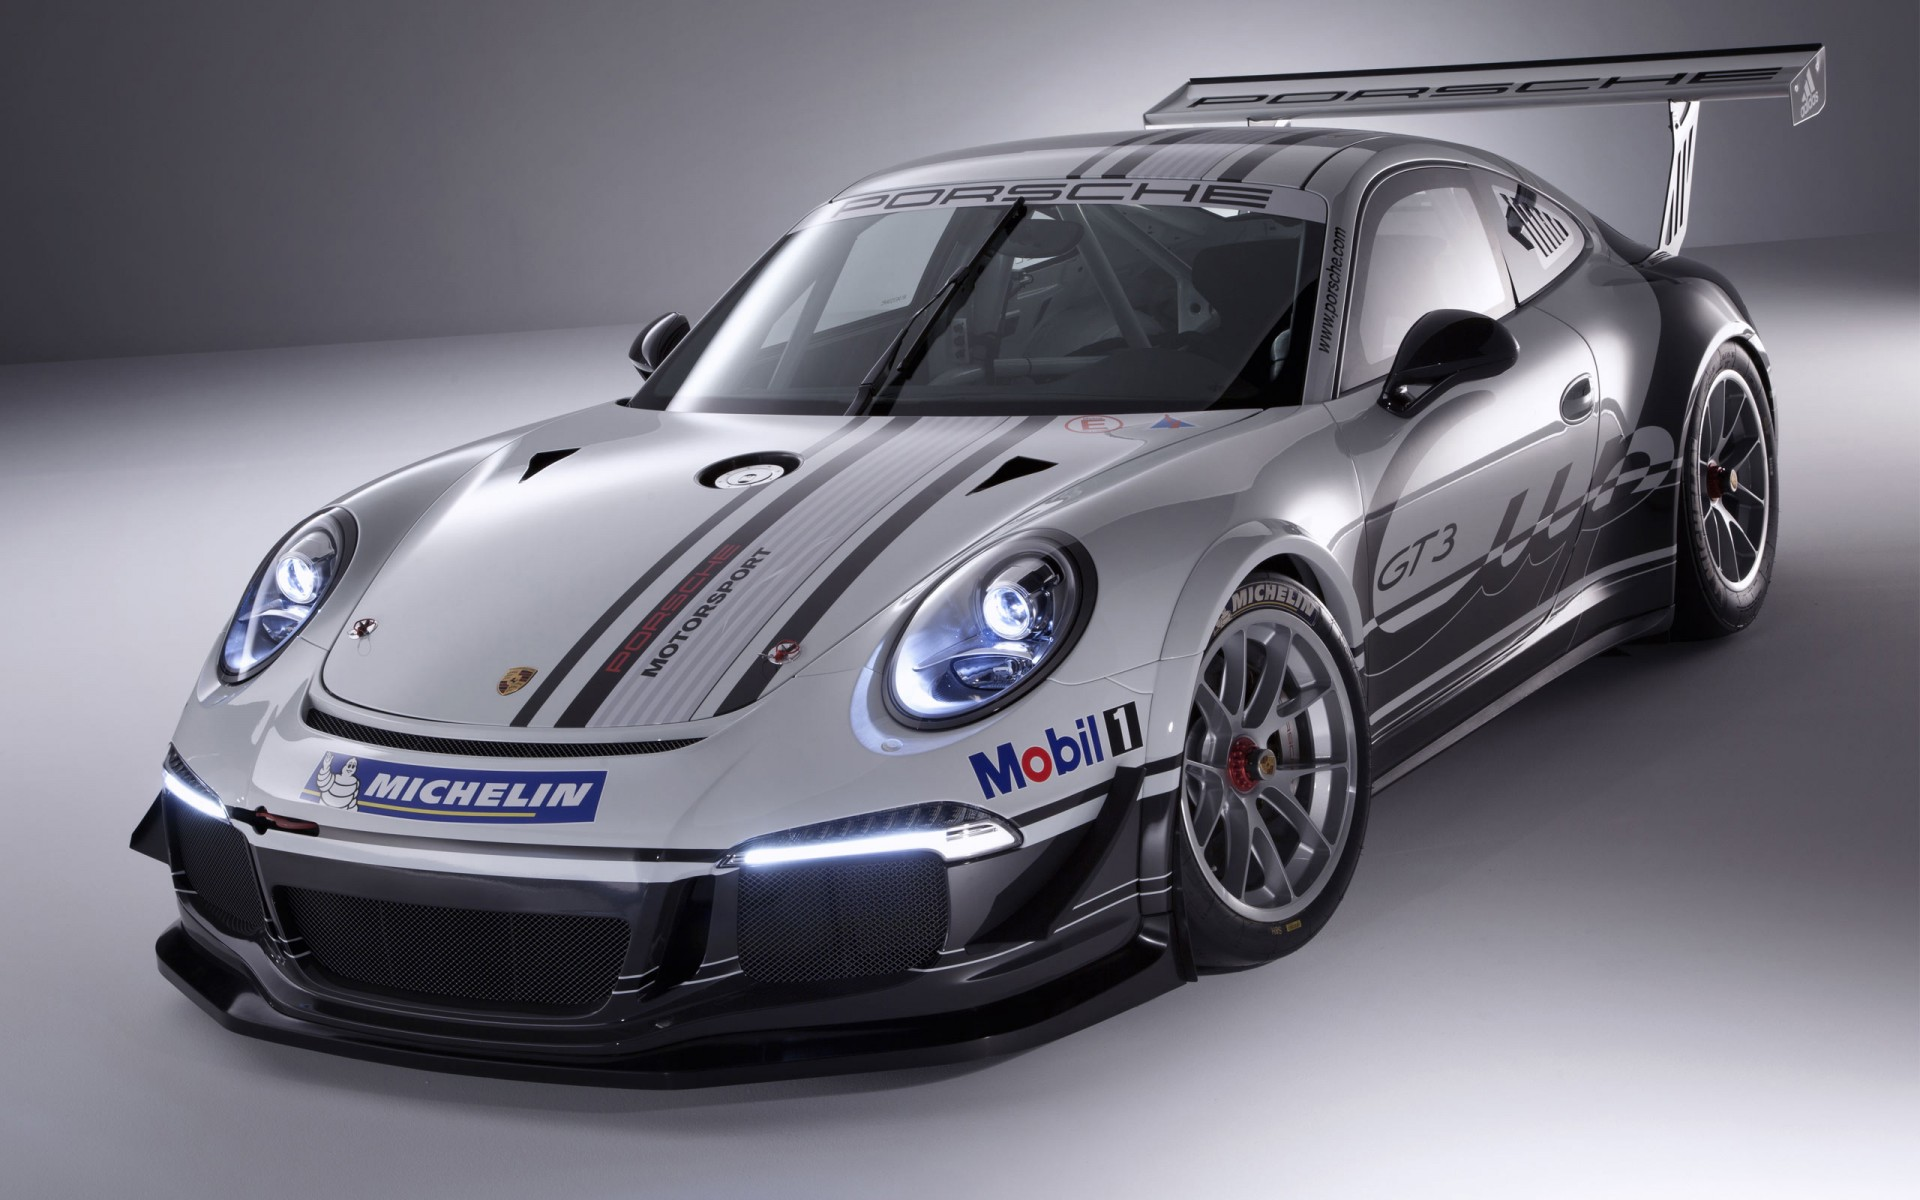 2013 porsche 911 gt3 cup wallpaper hd car wallpapers - Porsche 911 Wallpaper Widescreen